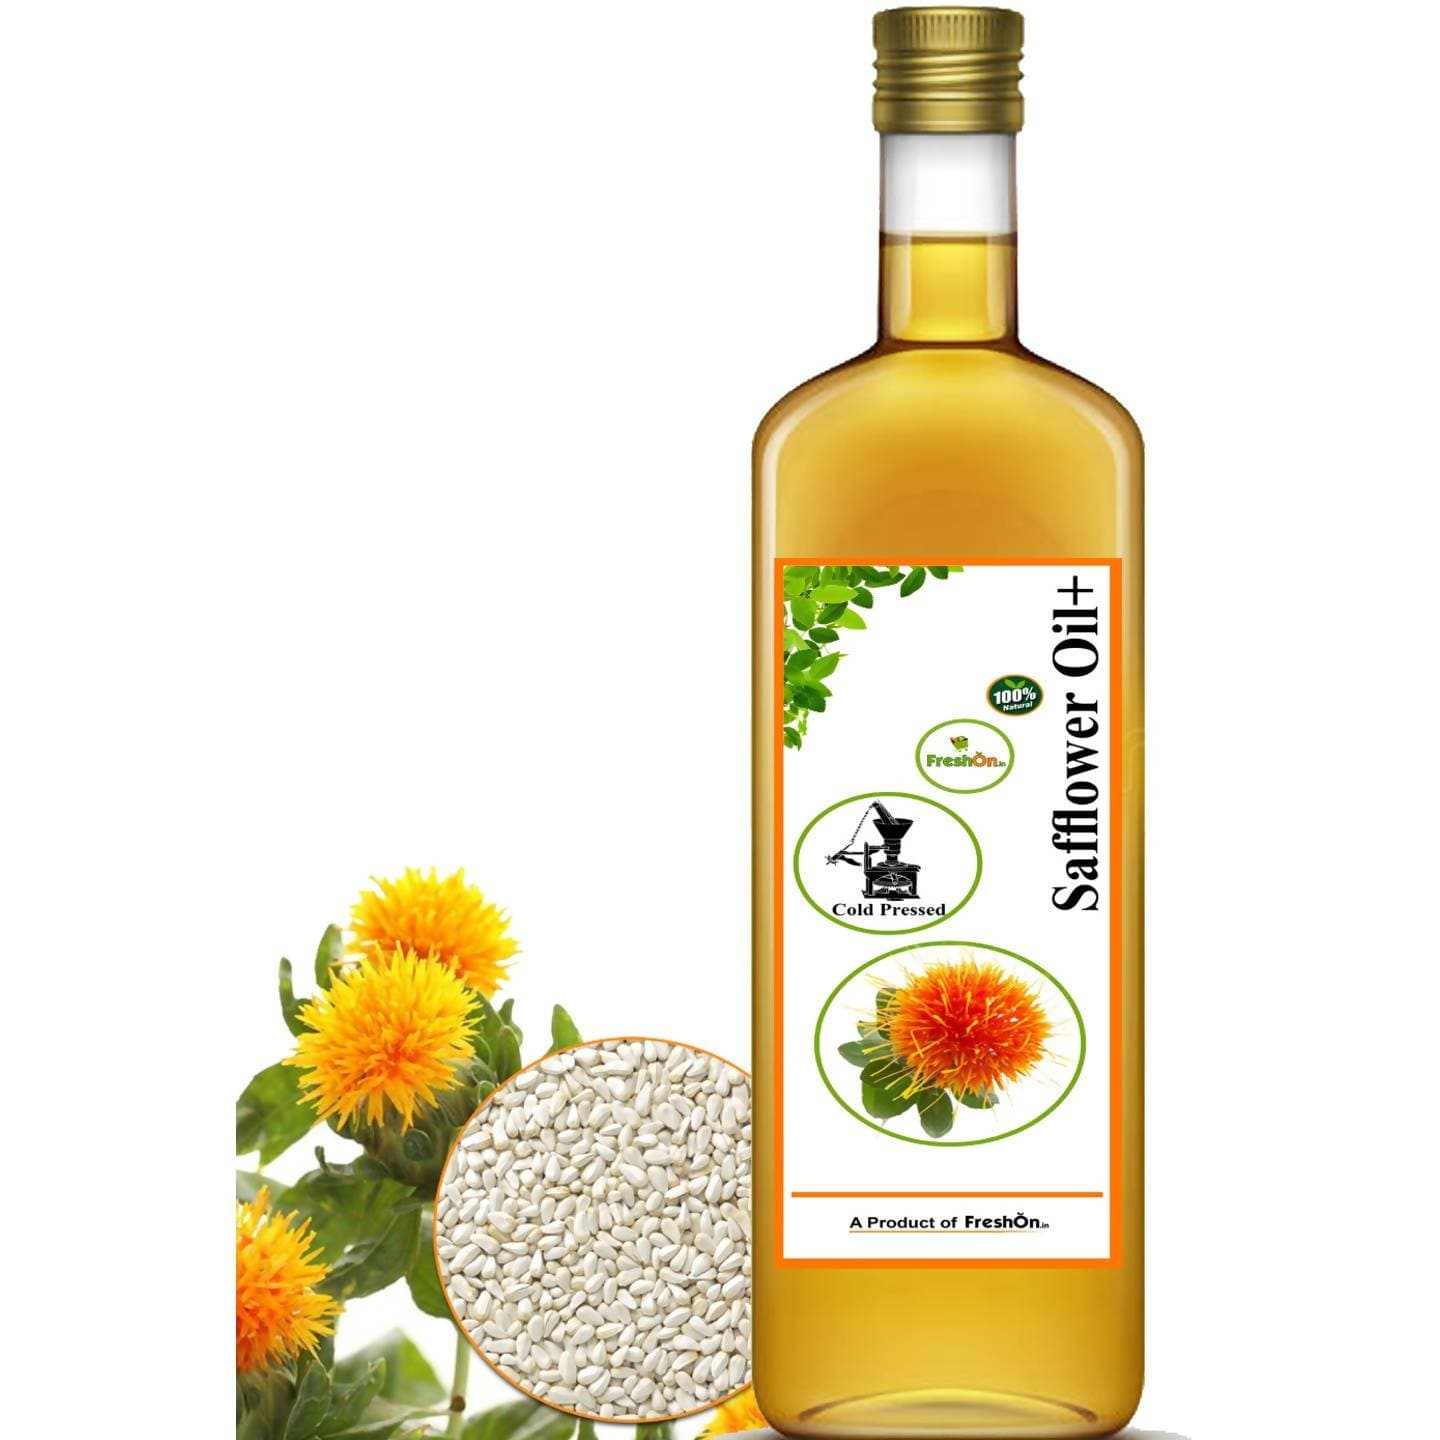 Freshonin Safflower Oil + Cold Pressed